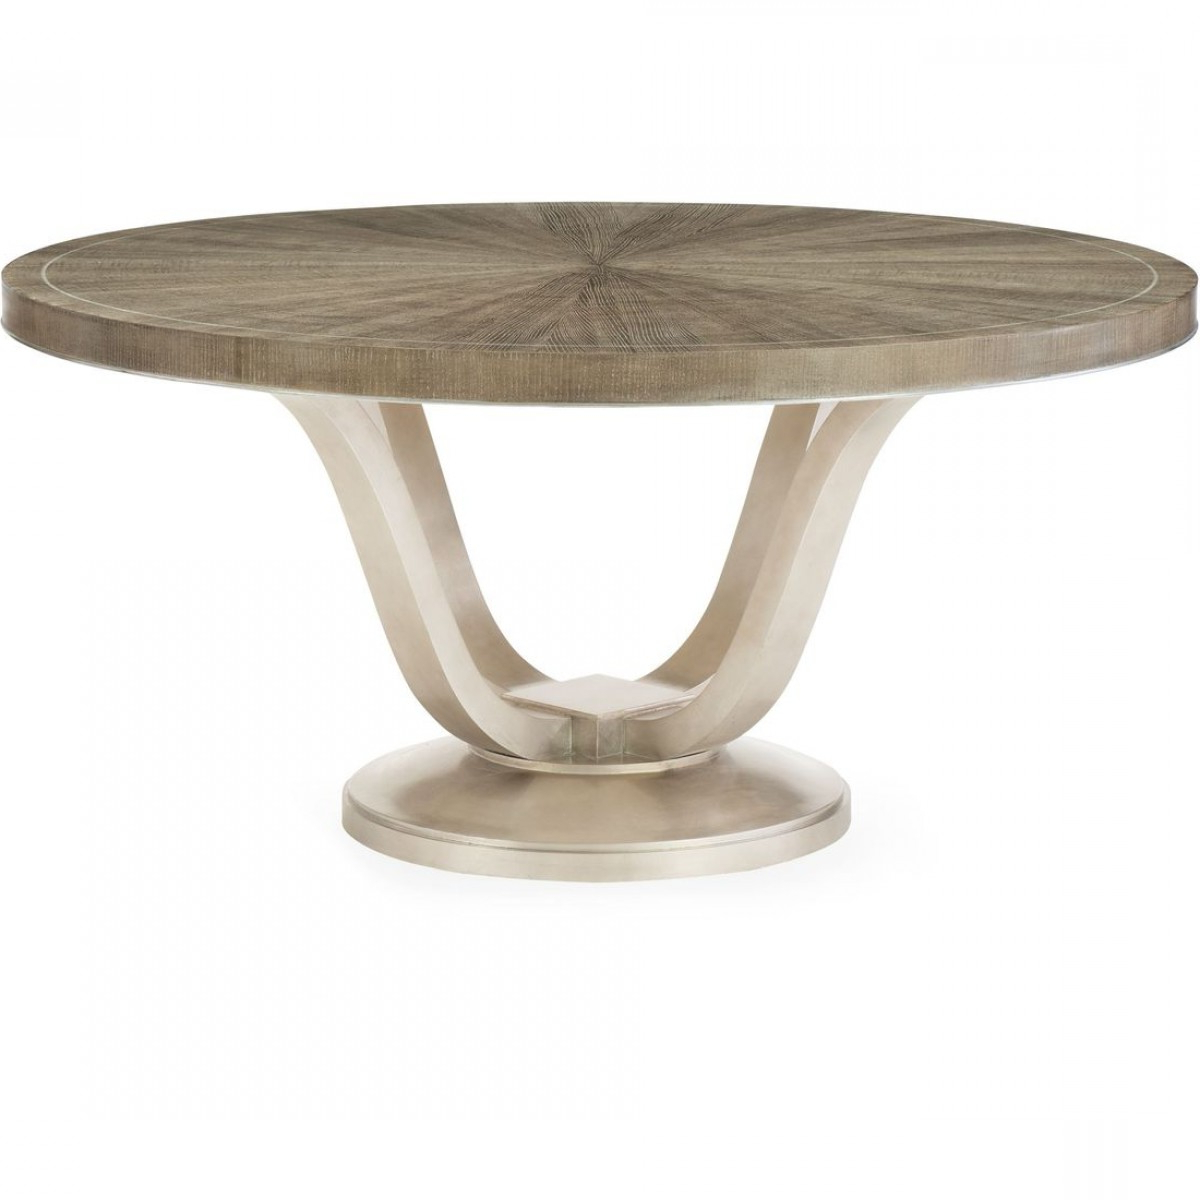 Avondale Dining Tables For Most Current Caracole Avondale Round Dining Table (View 9 of 25)